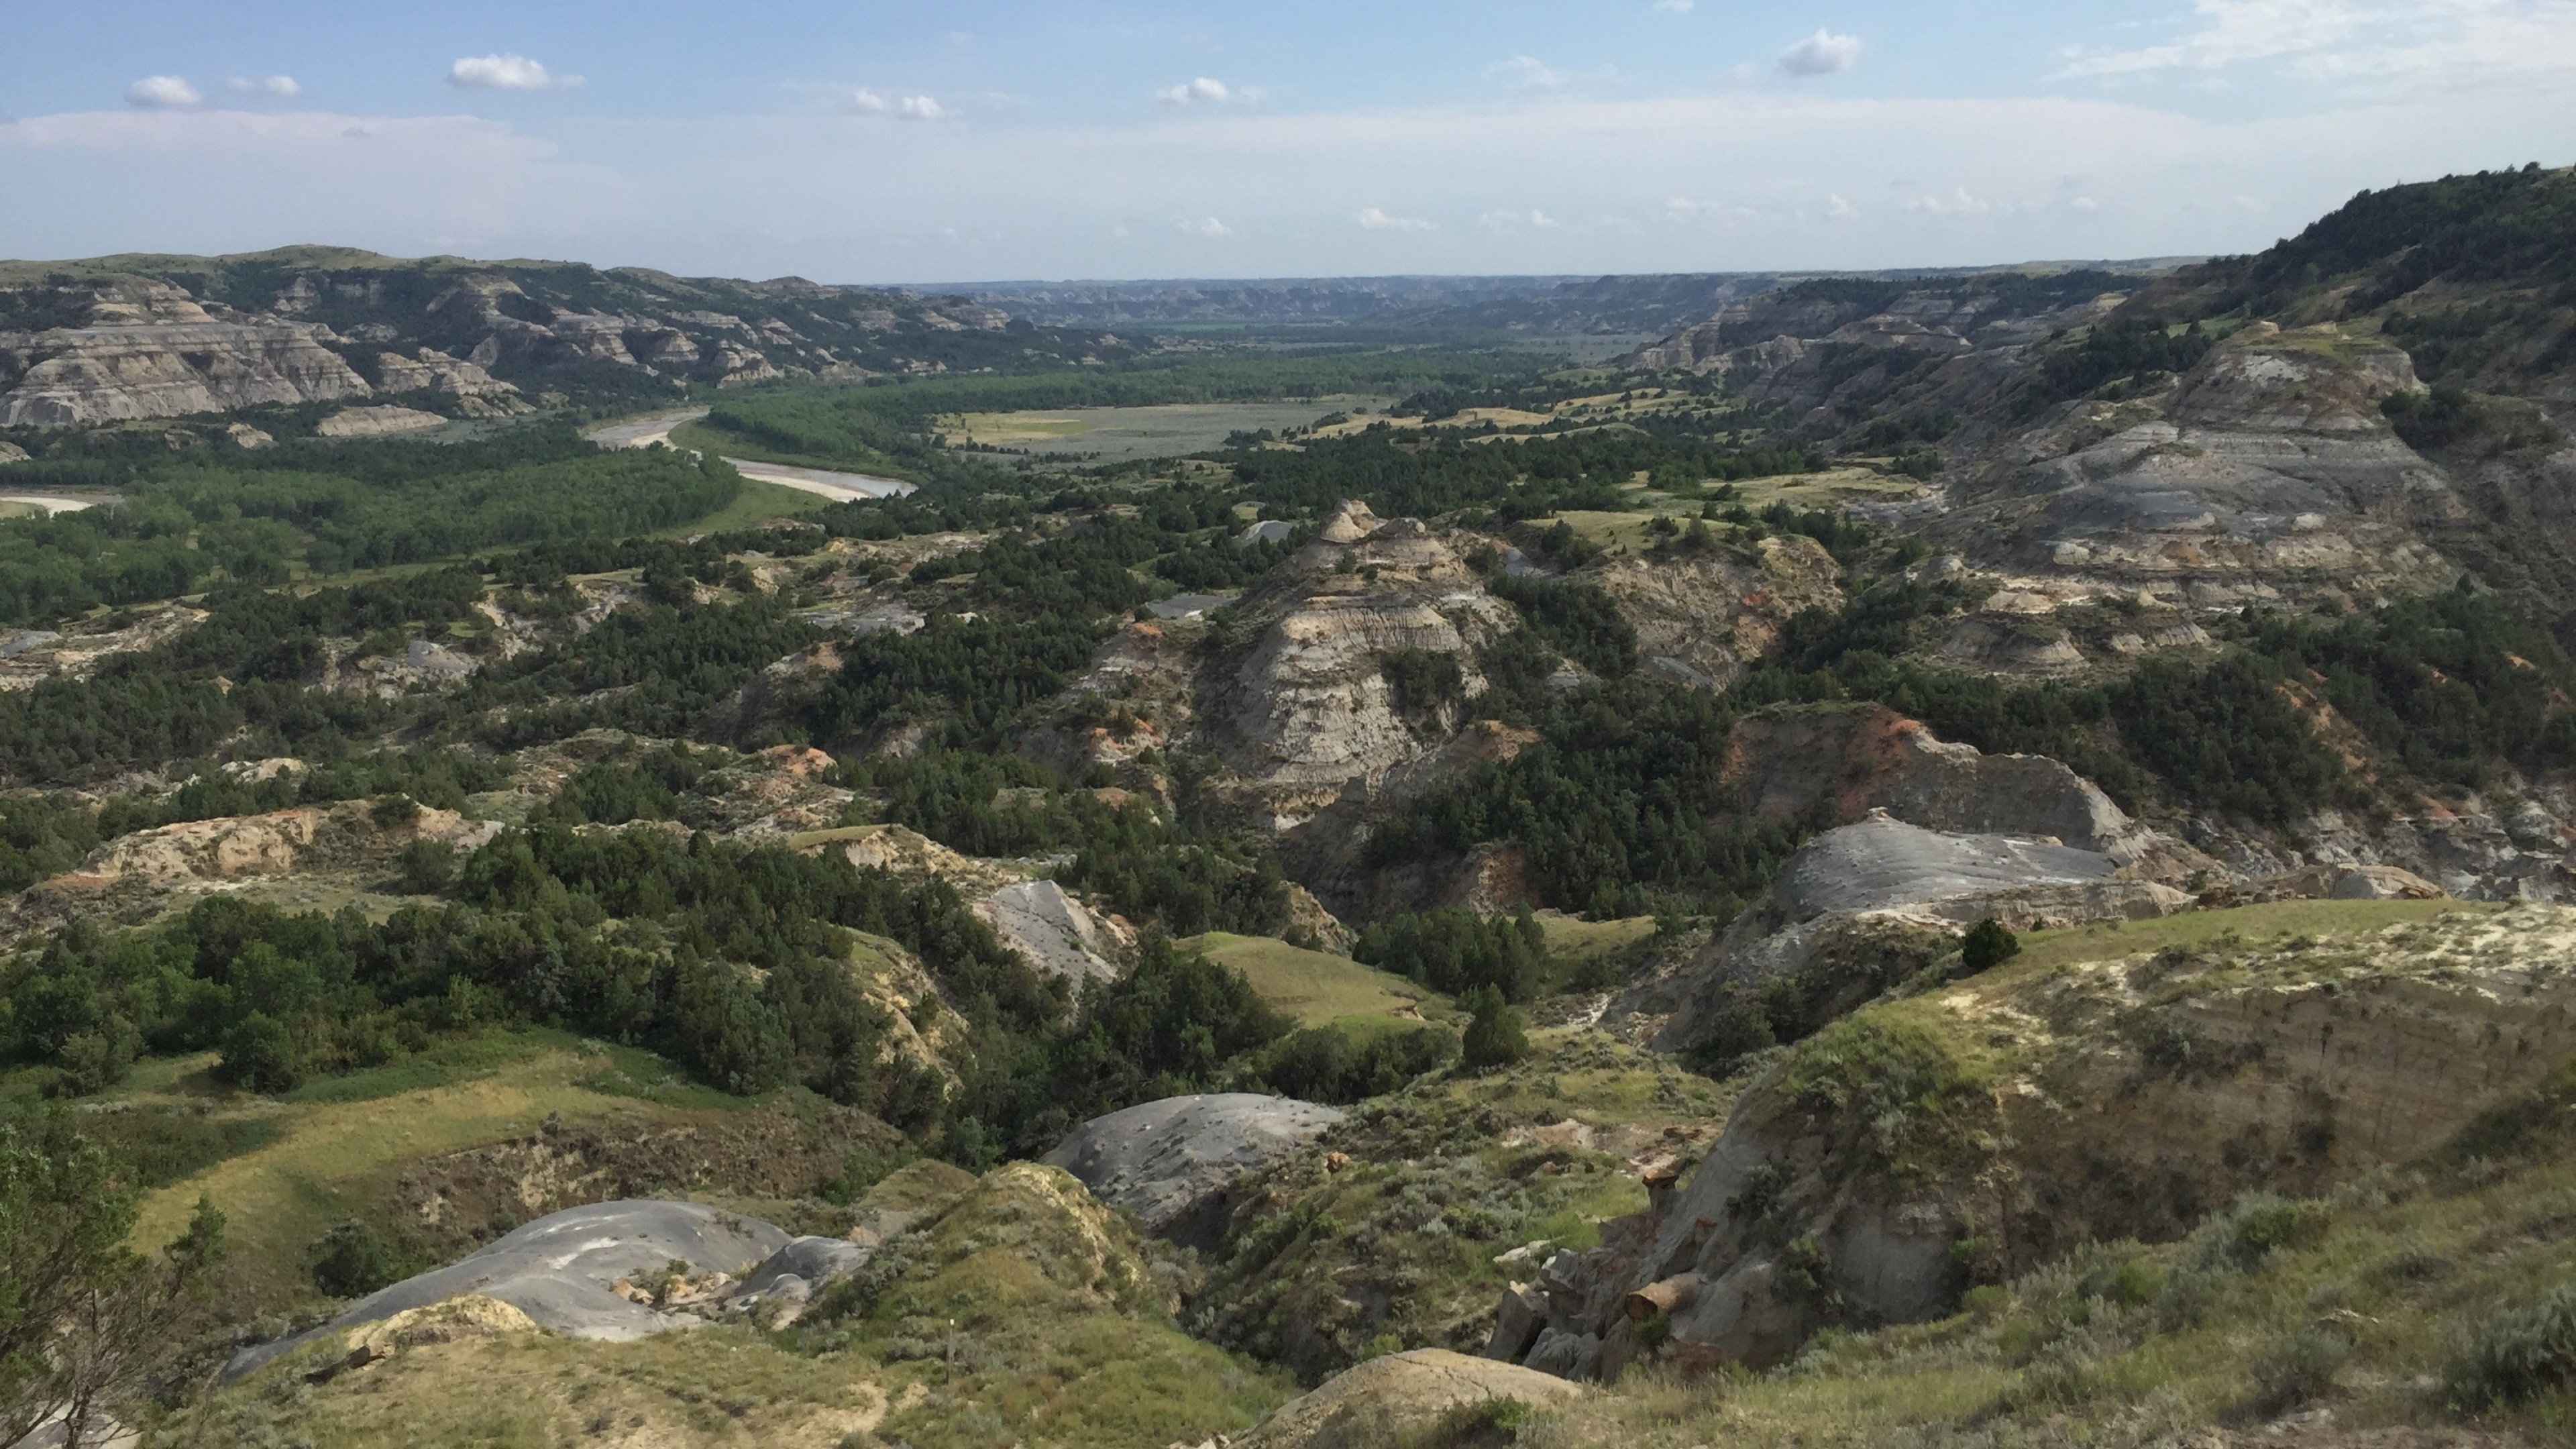 View of Theodore Roosevelt National Park